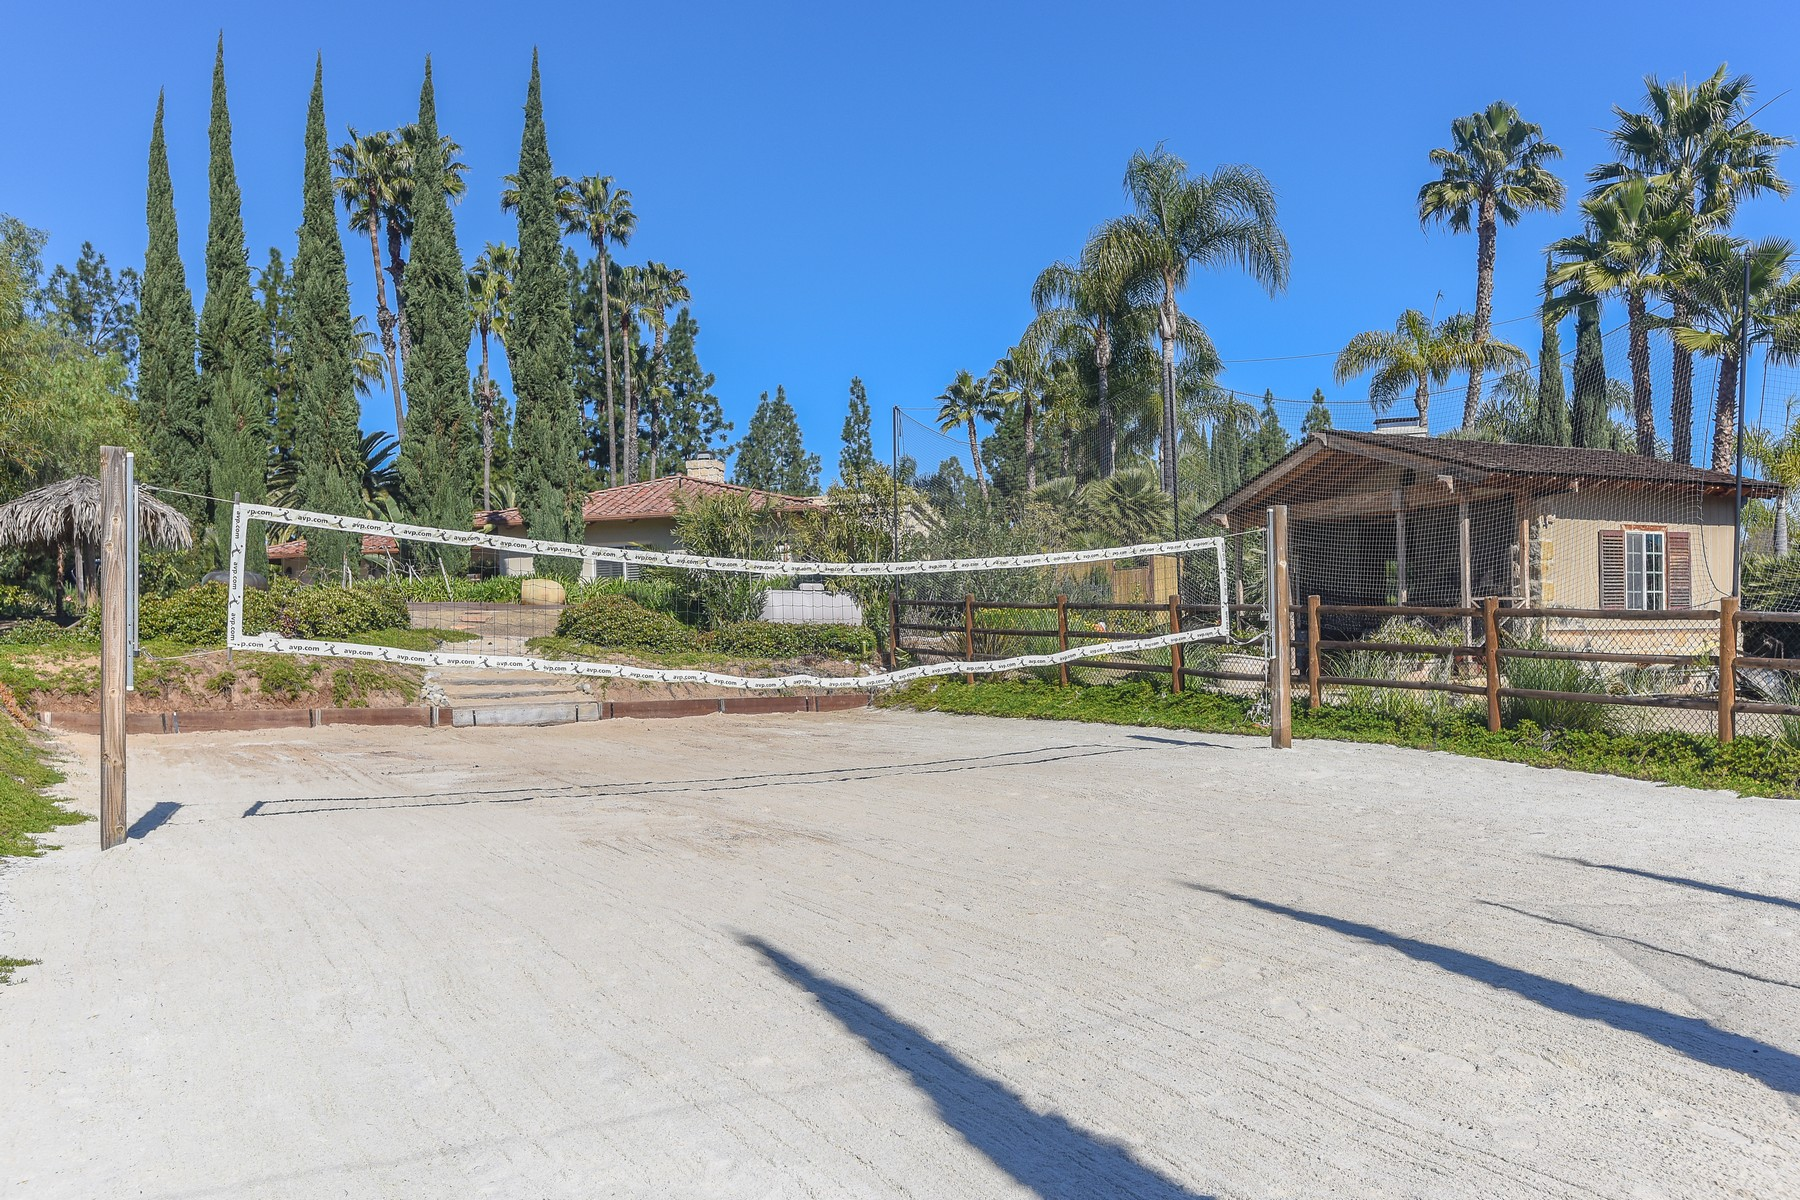 Additional photo for property listing at 7045 El Vuelo Del Este  Rancho Santa Fe, California 92067 United States